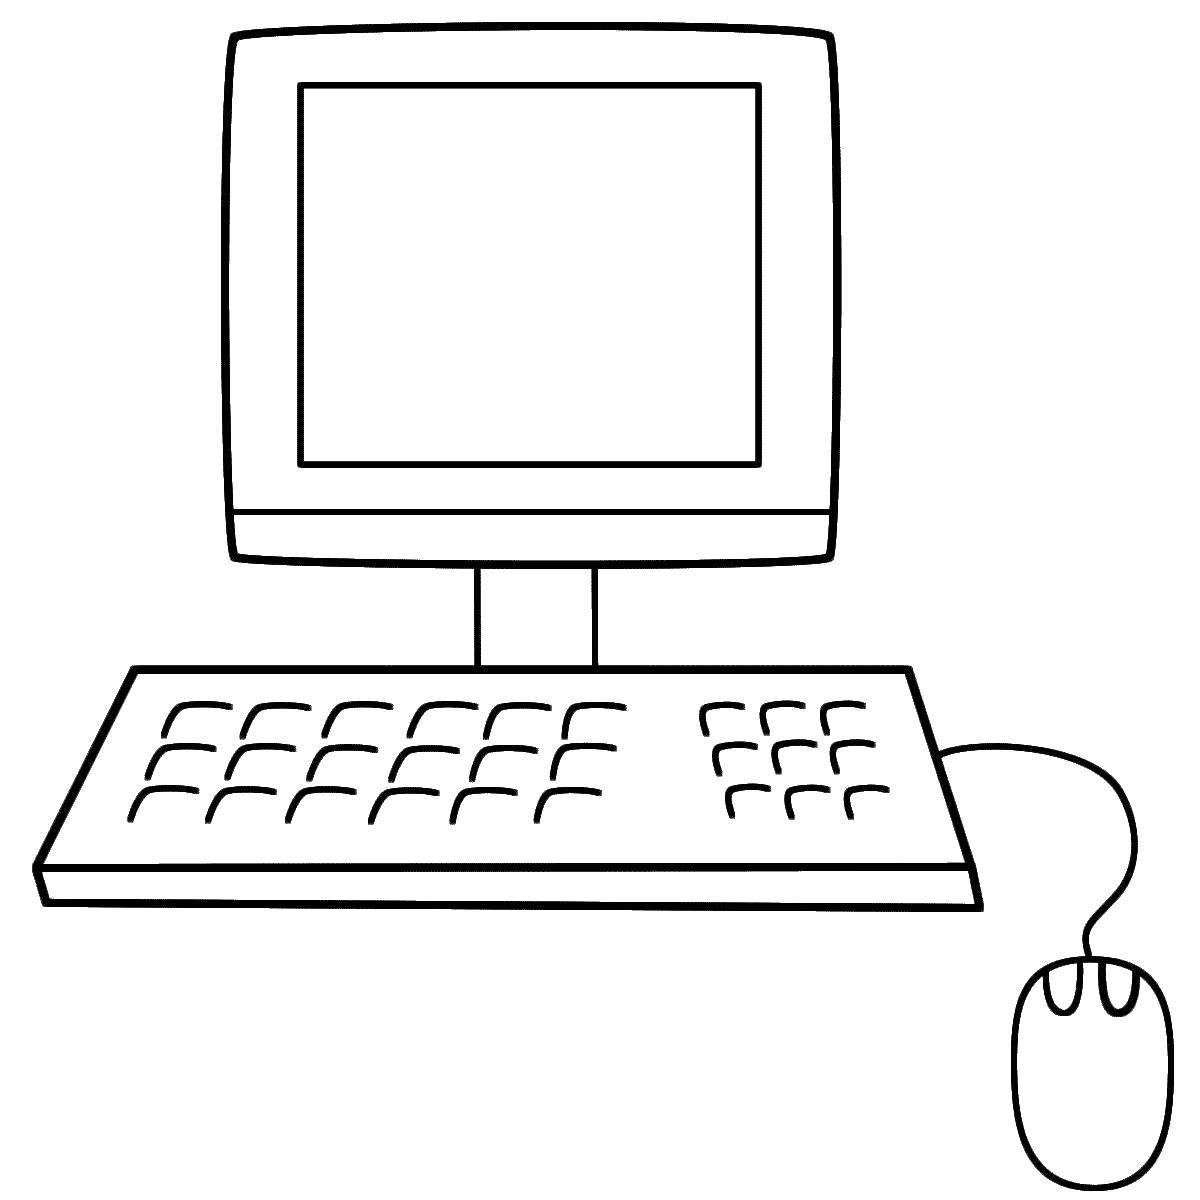 Coloring Monitor and keyboard Download monitor, keyboard, mouse.  Print ,coloring,